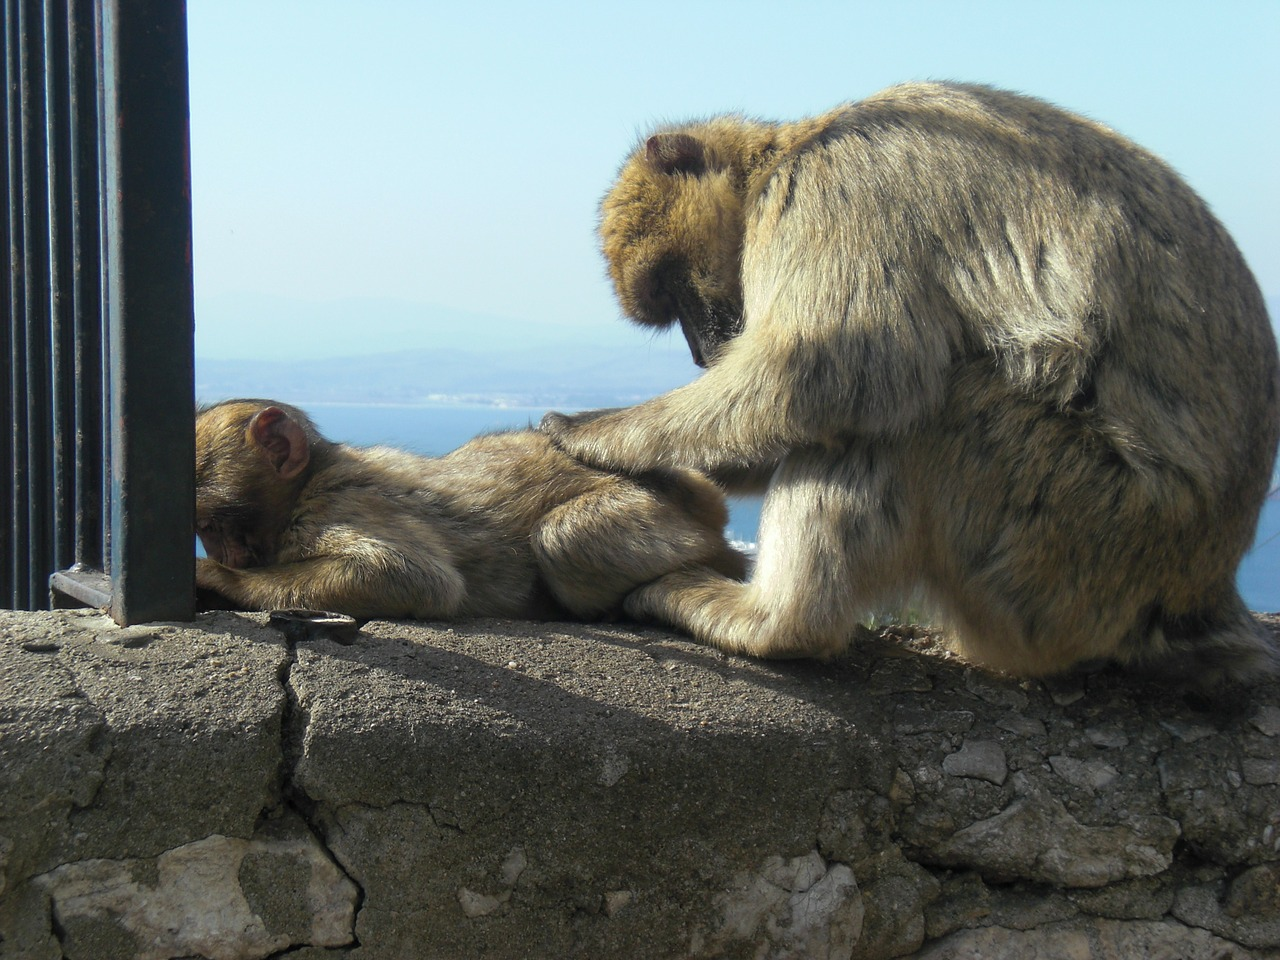 mono gibraltar monkey family free photo